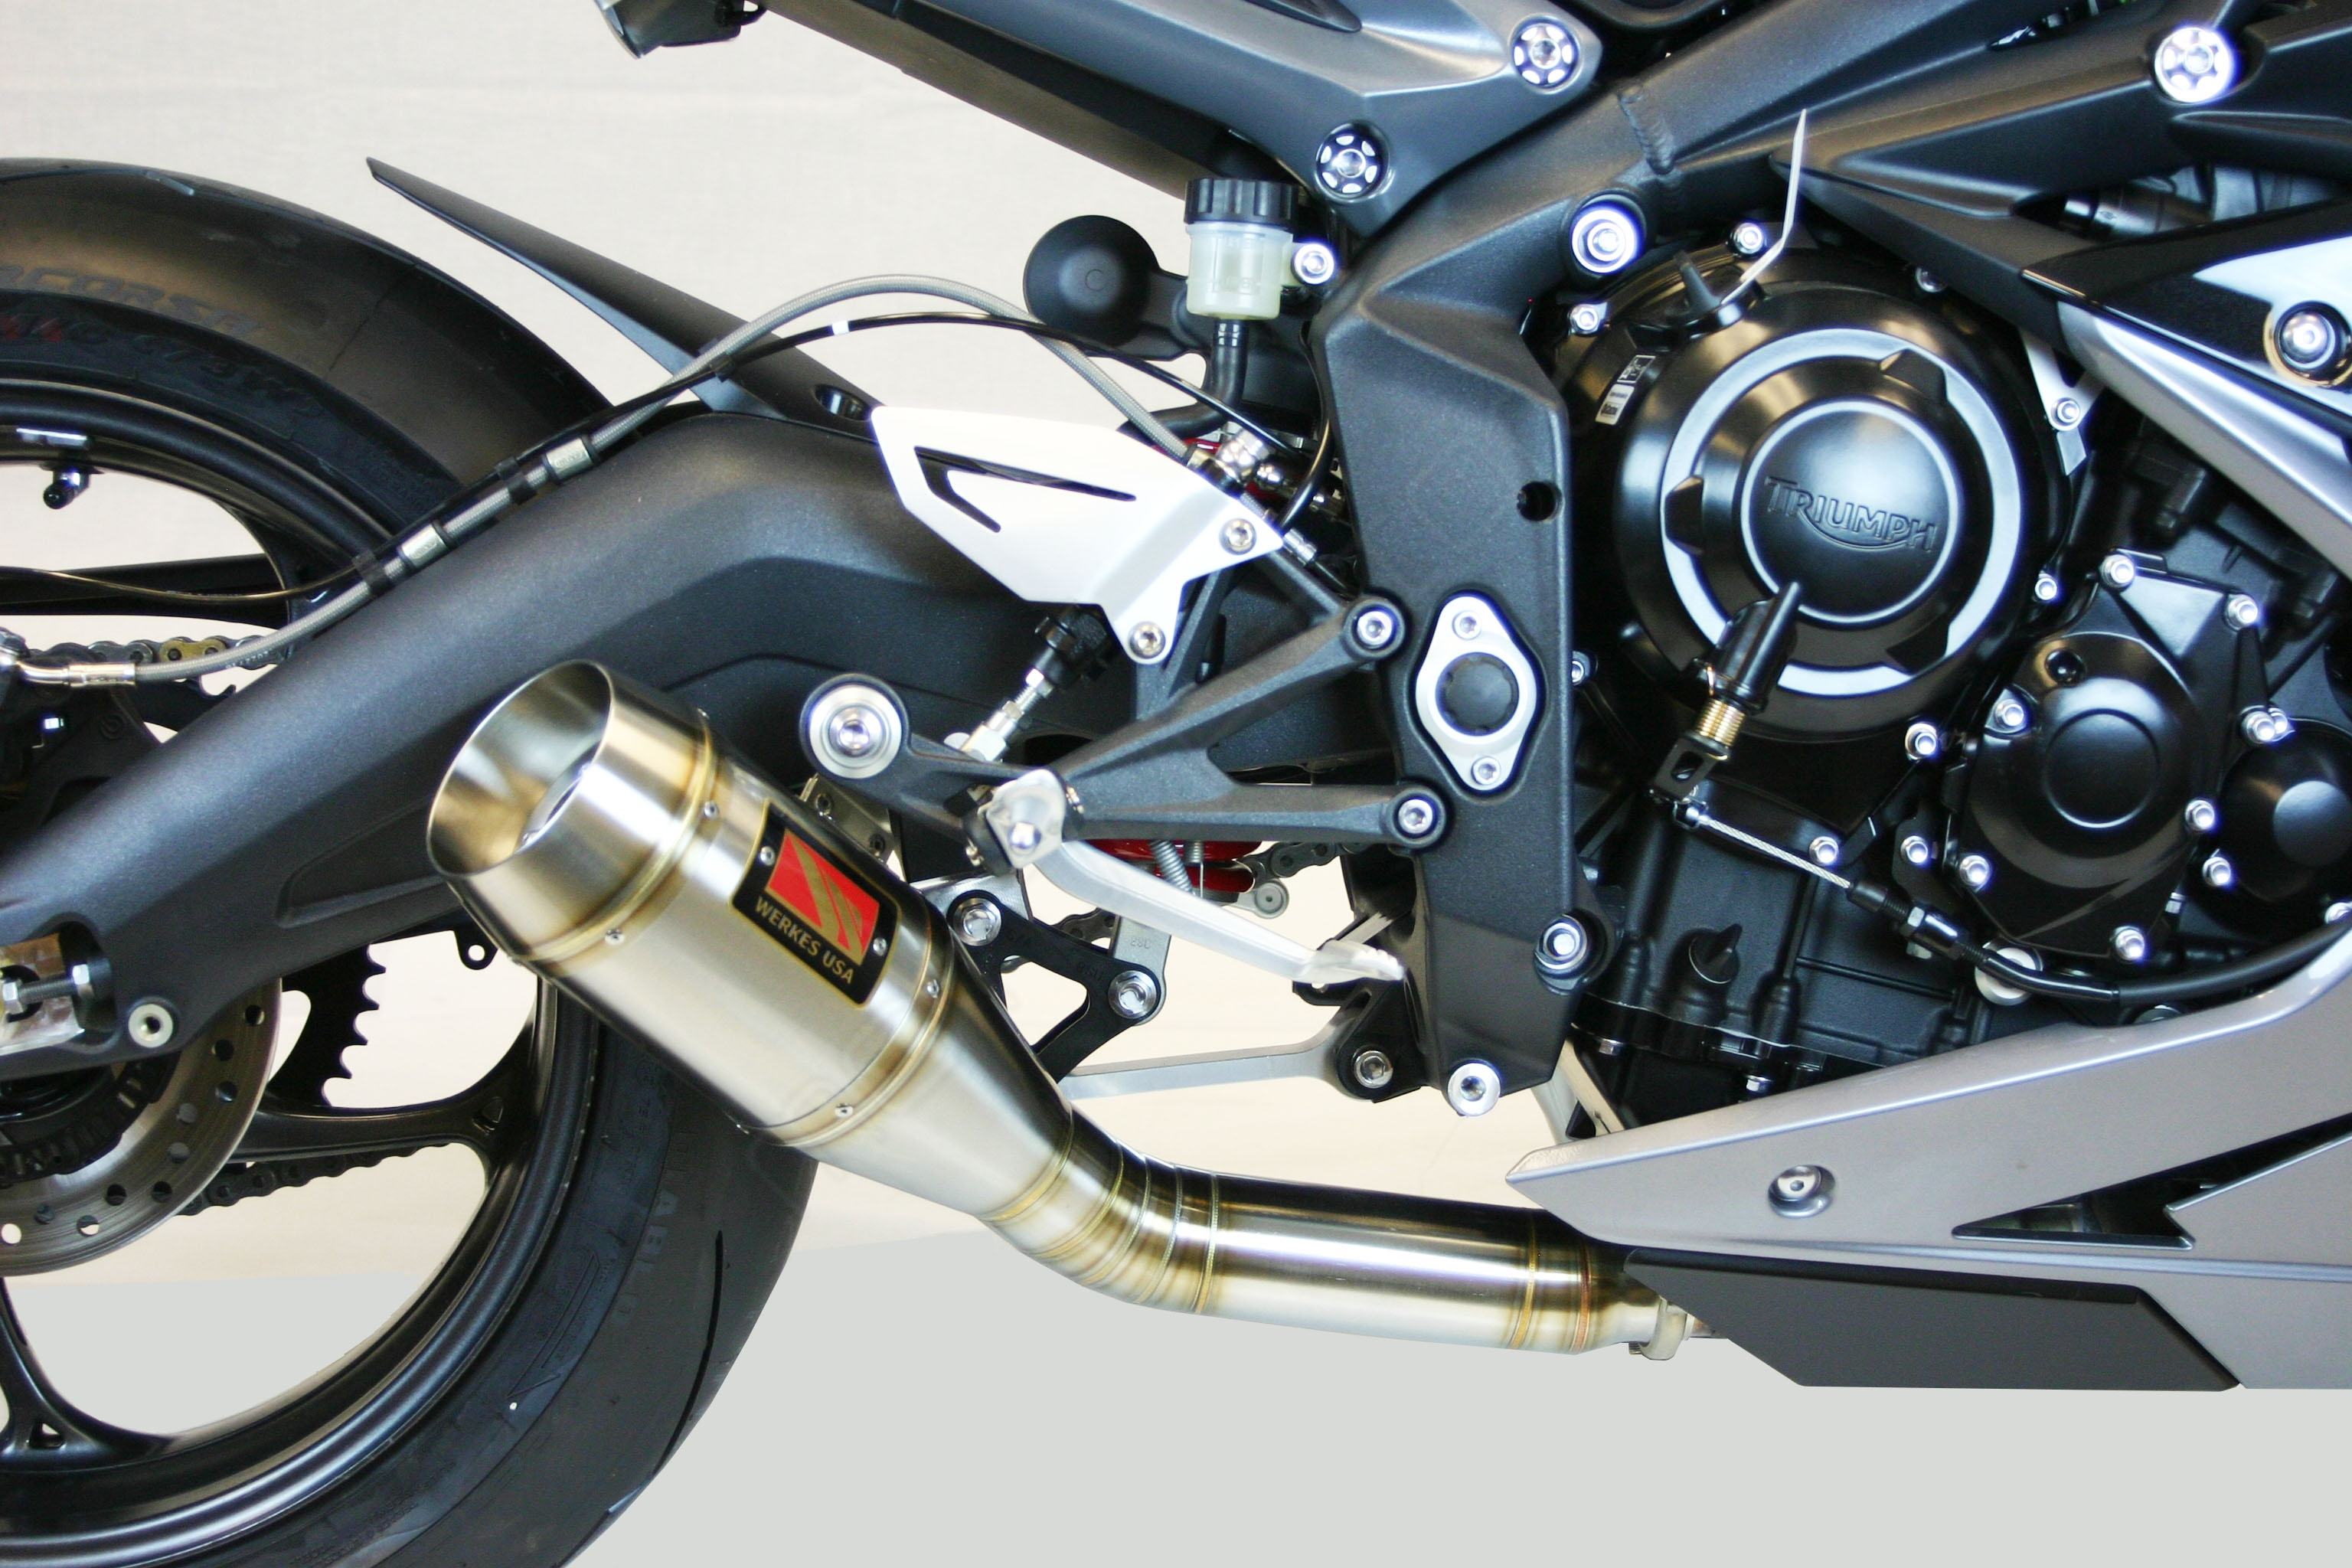 gp slip on exhaust by competition werkes triumph daytona 675r 2017 wt679. Black Bedroom Furniture Sets. Home Design Ideas